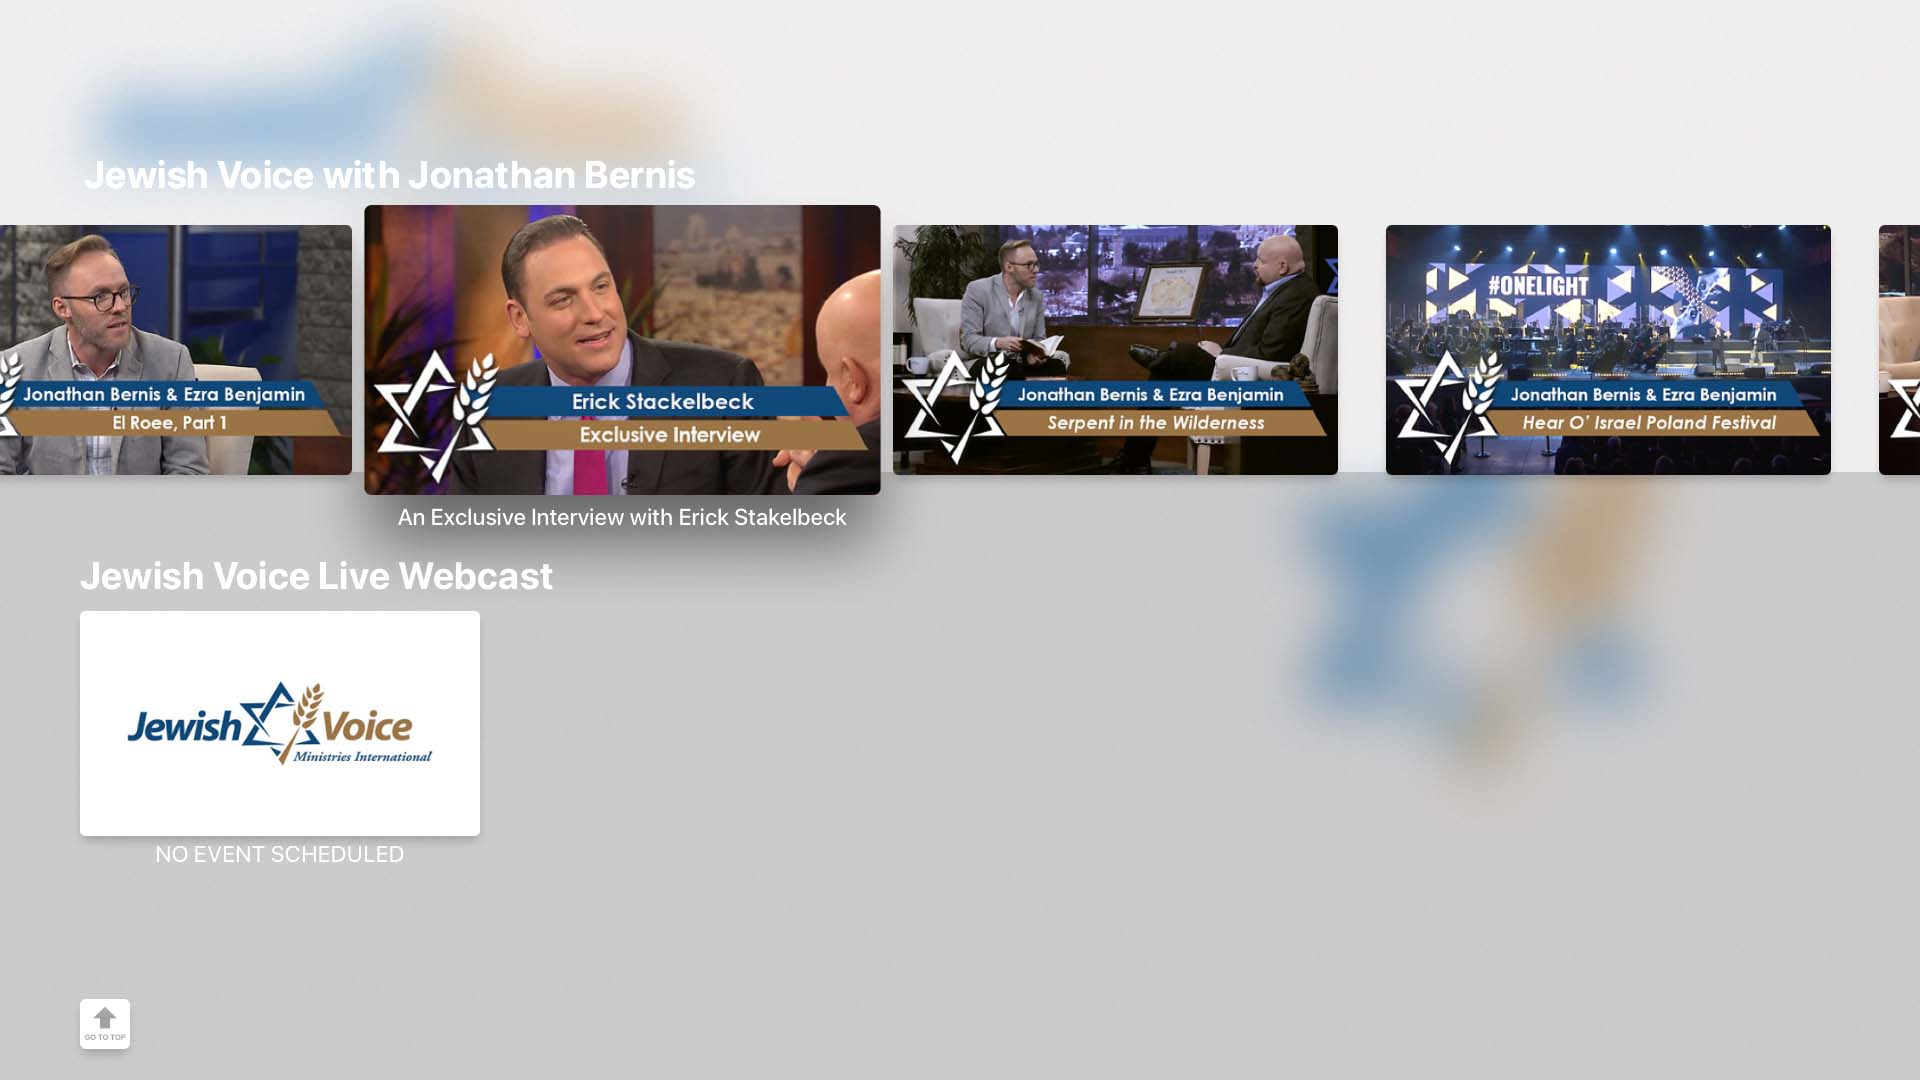 Jewish Voice - Jonathan Bernis Screenshot 002